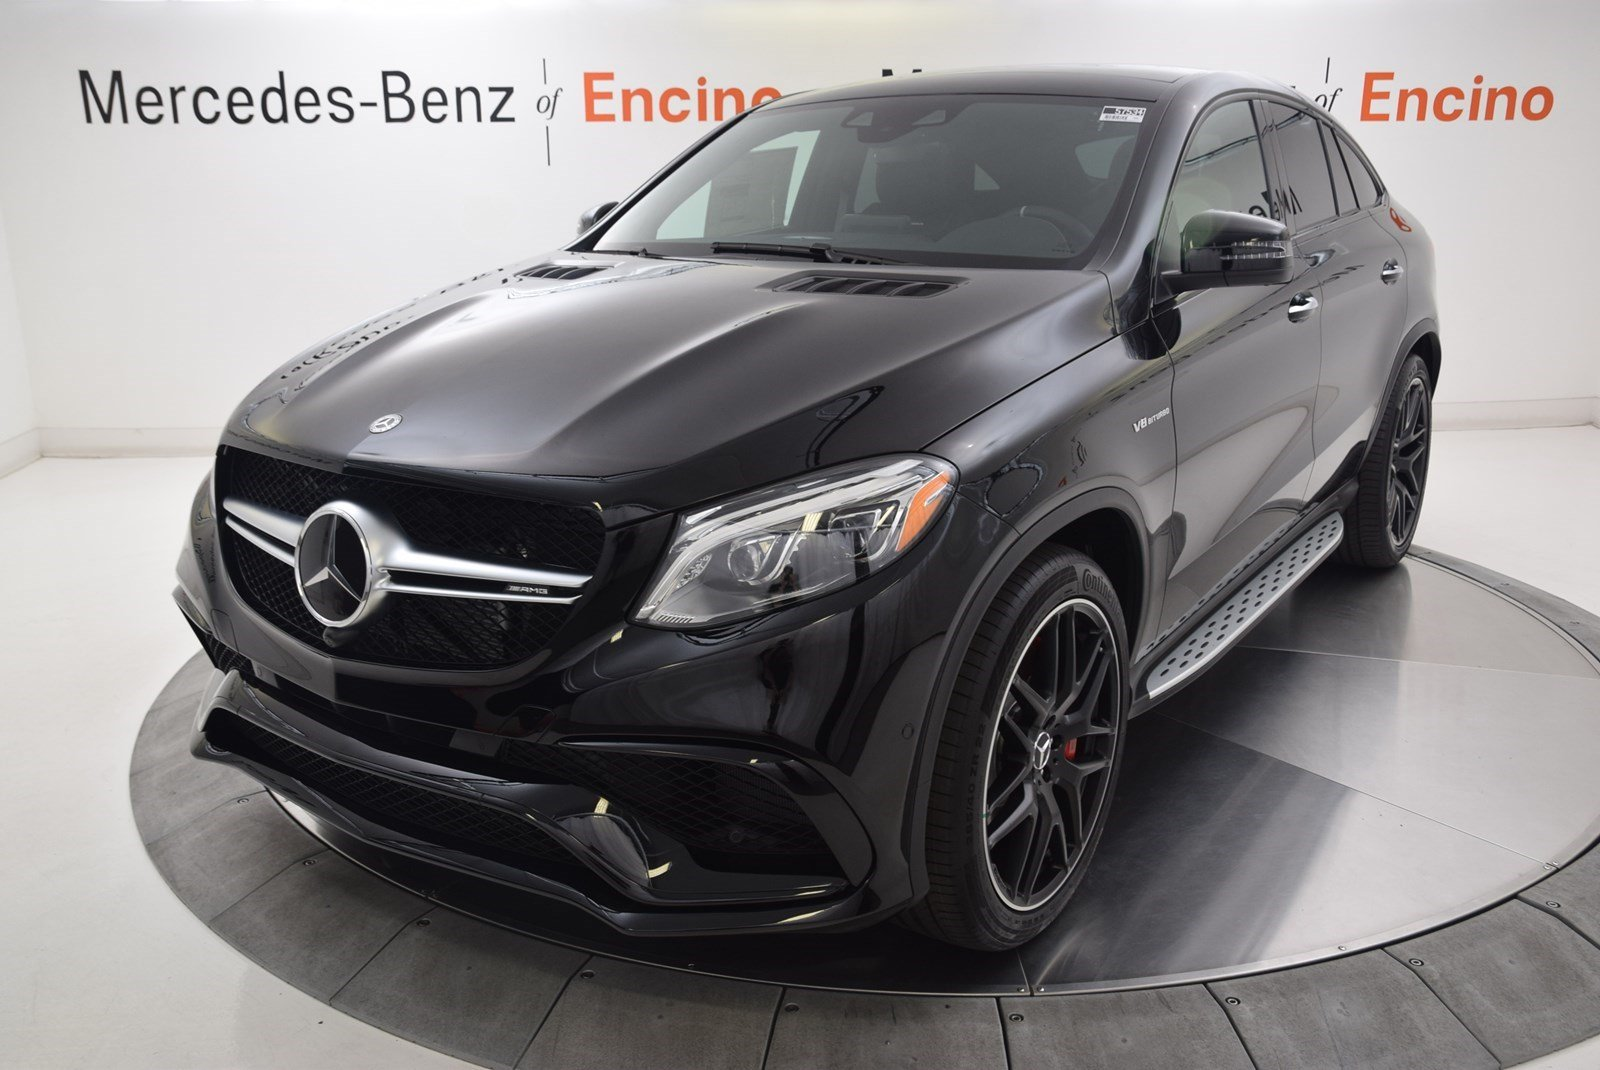 new 2018 mercedes benz gle gle 63 s amg coupe coupe in encino 57534 mercedes benz of encino. Black Bedroom Furniture Sets. Home Design Ideas